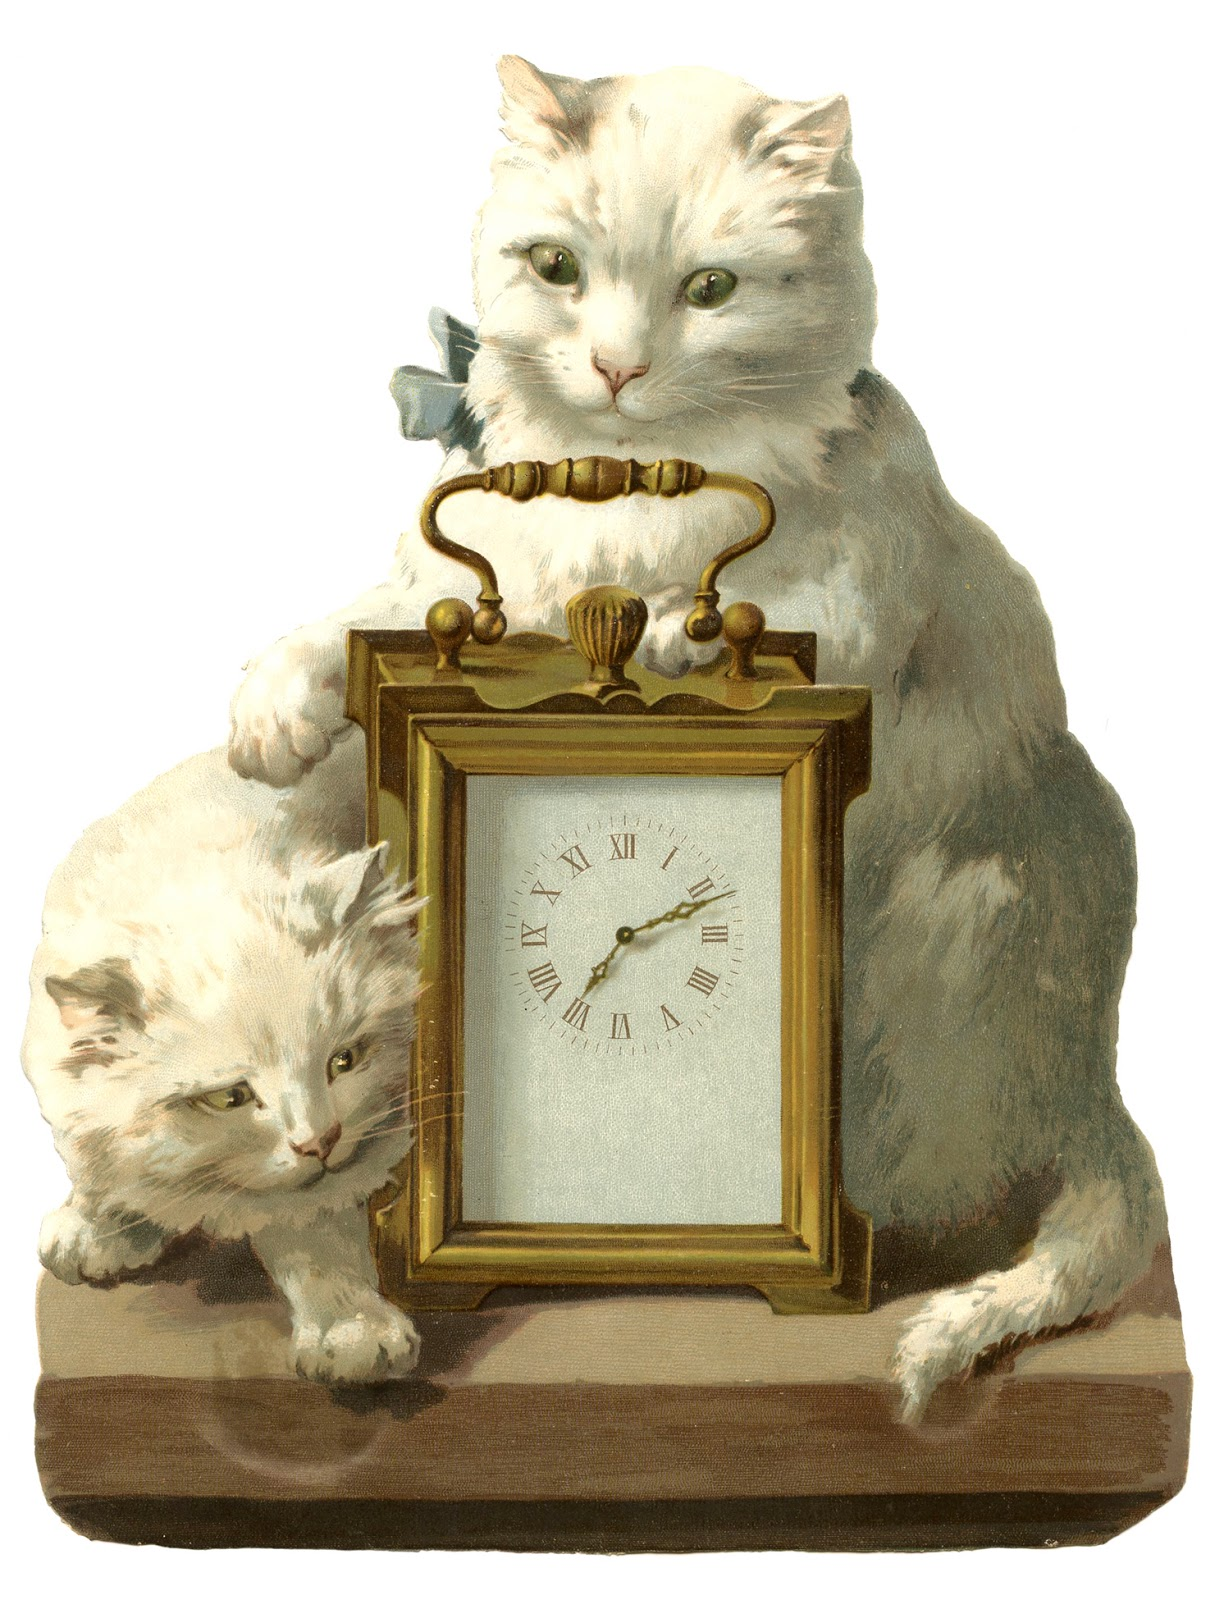 http://thegraphicsfairy.com/wp-content/uploads/blogger/-7AkHwDqhT1I/UZ6YtFafwUI/AAAAAAAAjFw/pKYJaqqf4l0/s1600/Cats-Clock-Vintage-Image-GraphicsFairy.jpg